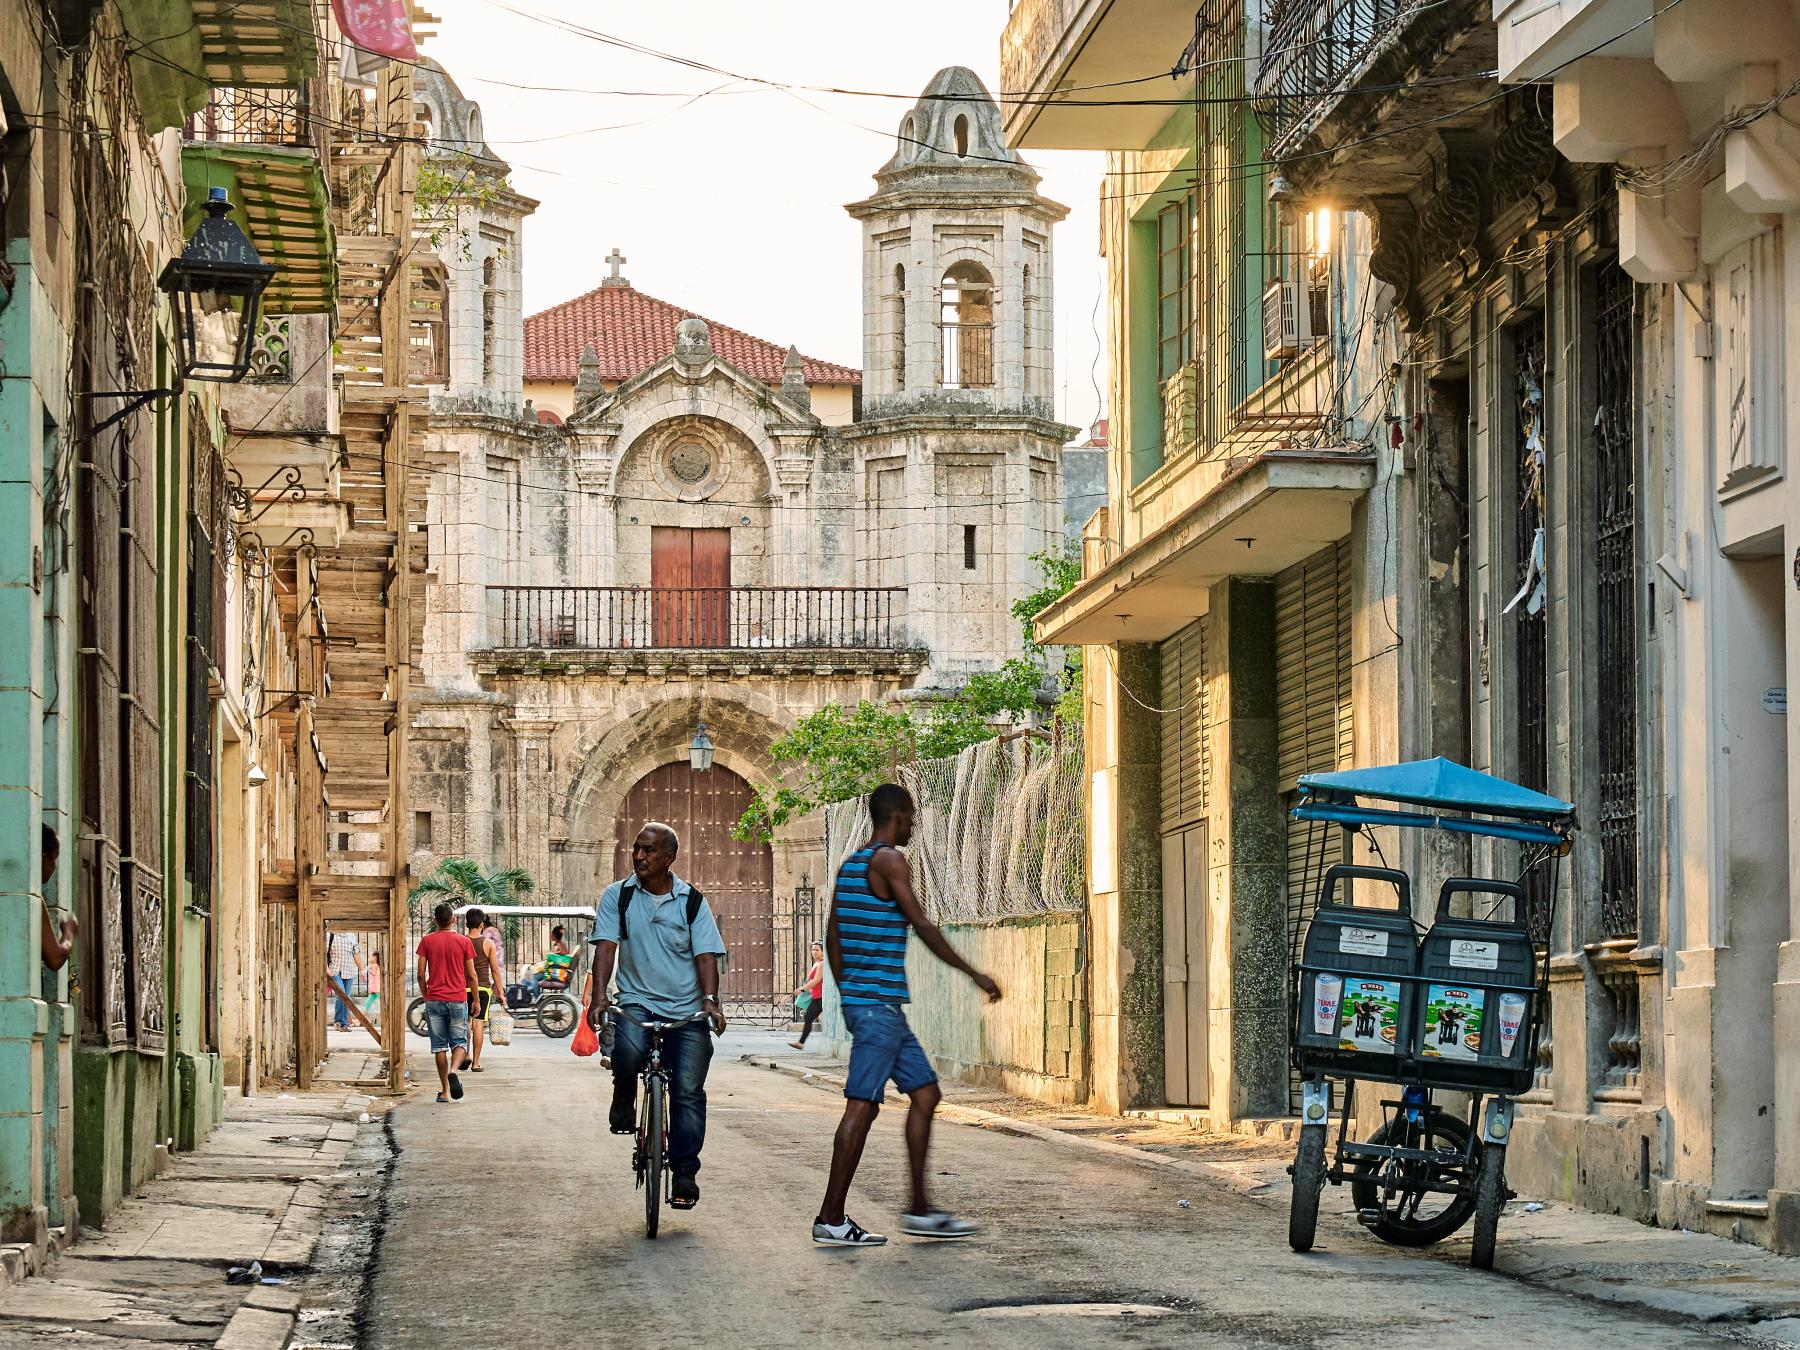 Let's Meet the Mayans: Cuba, Mexico and Central America starting at Cuba